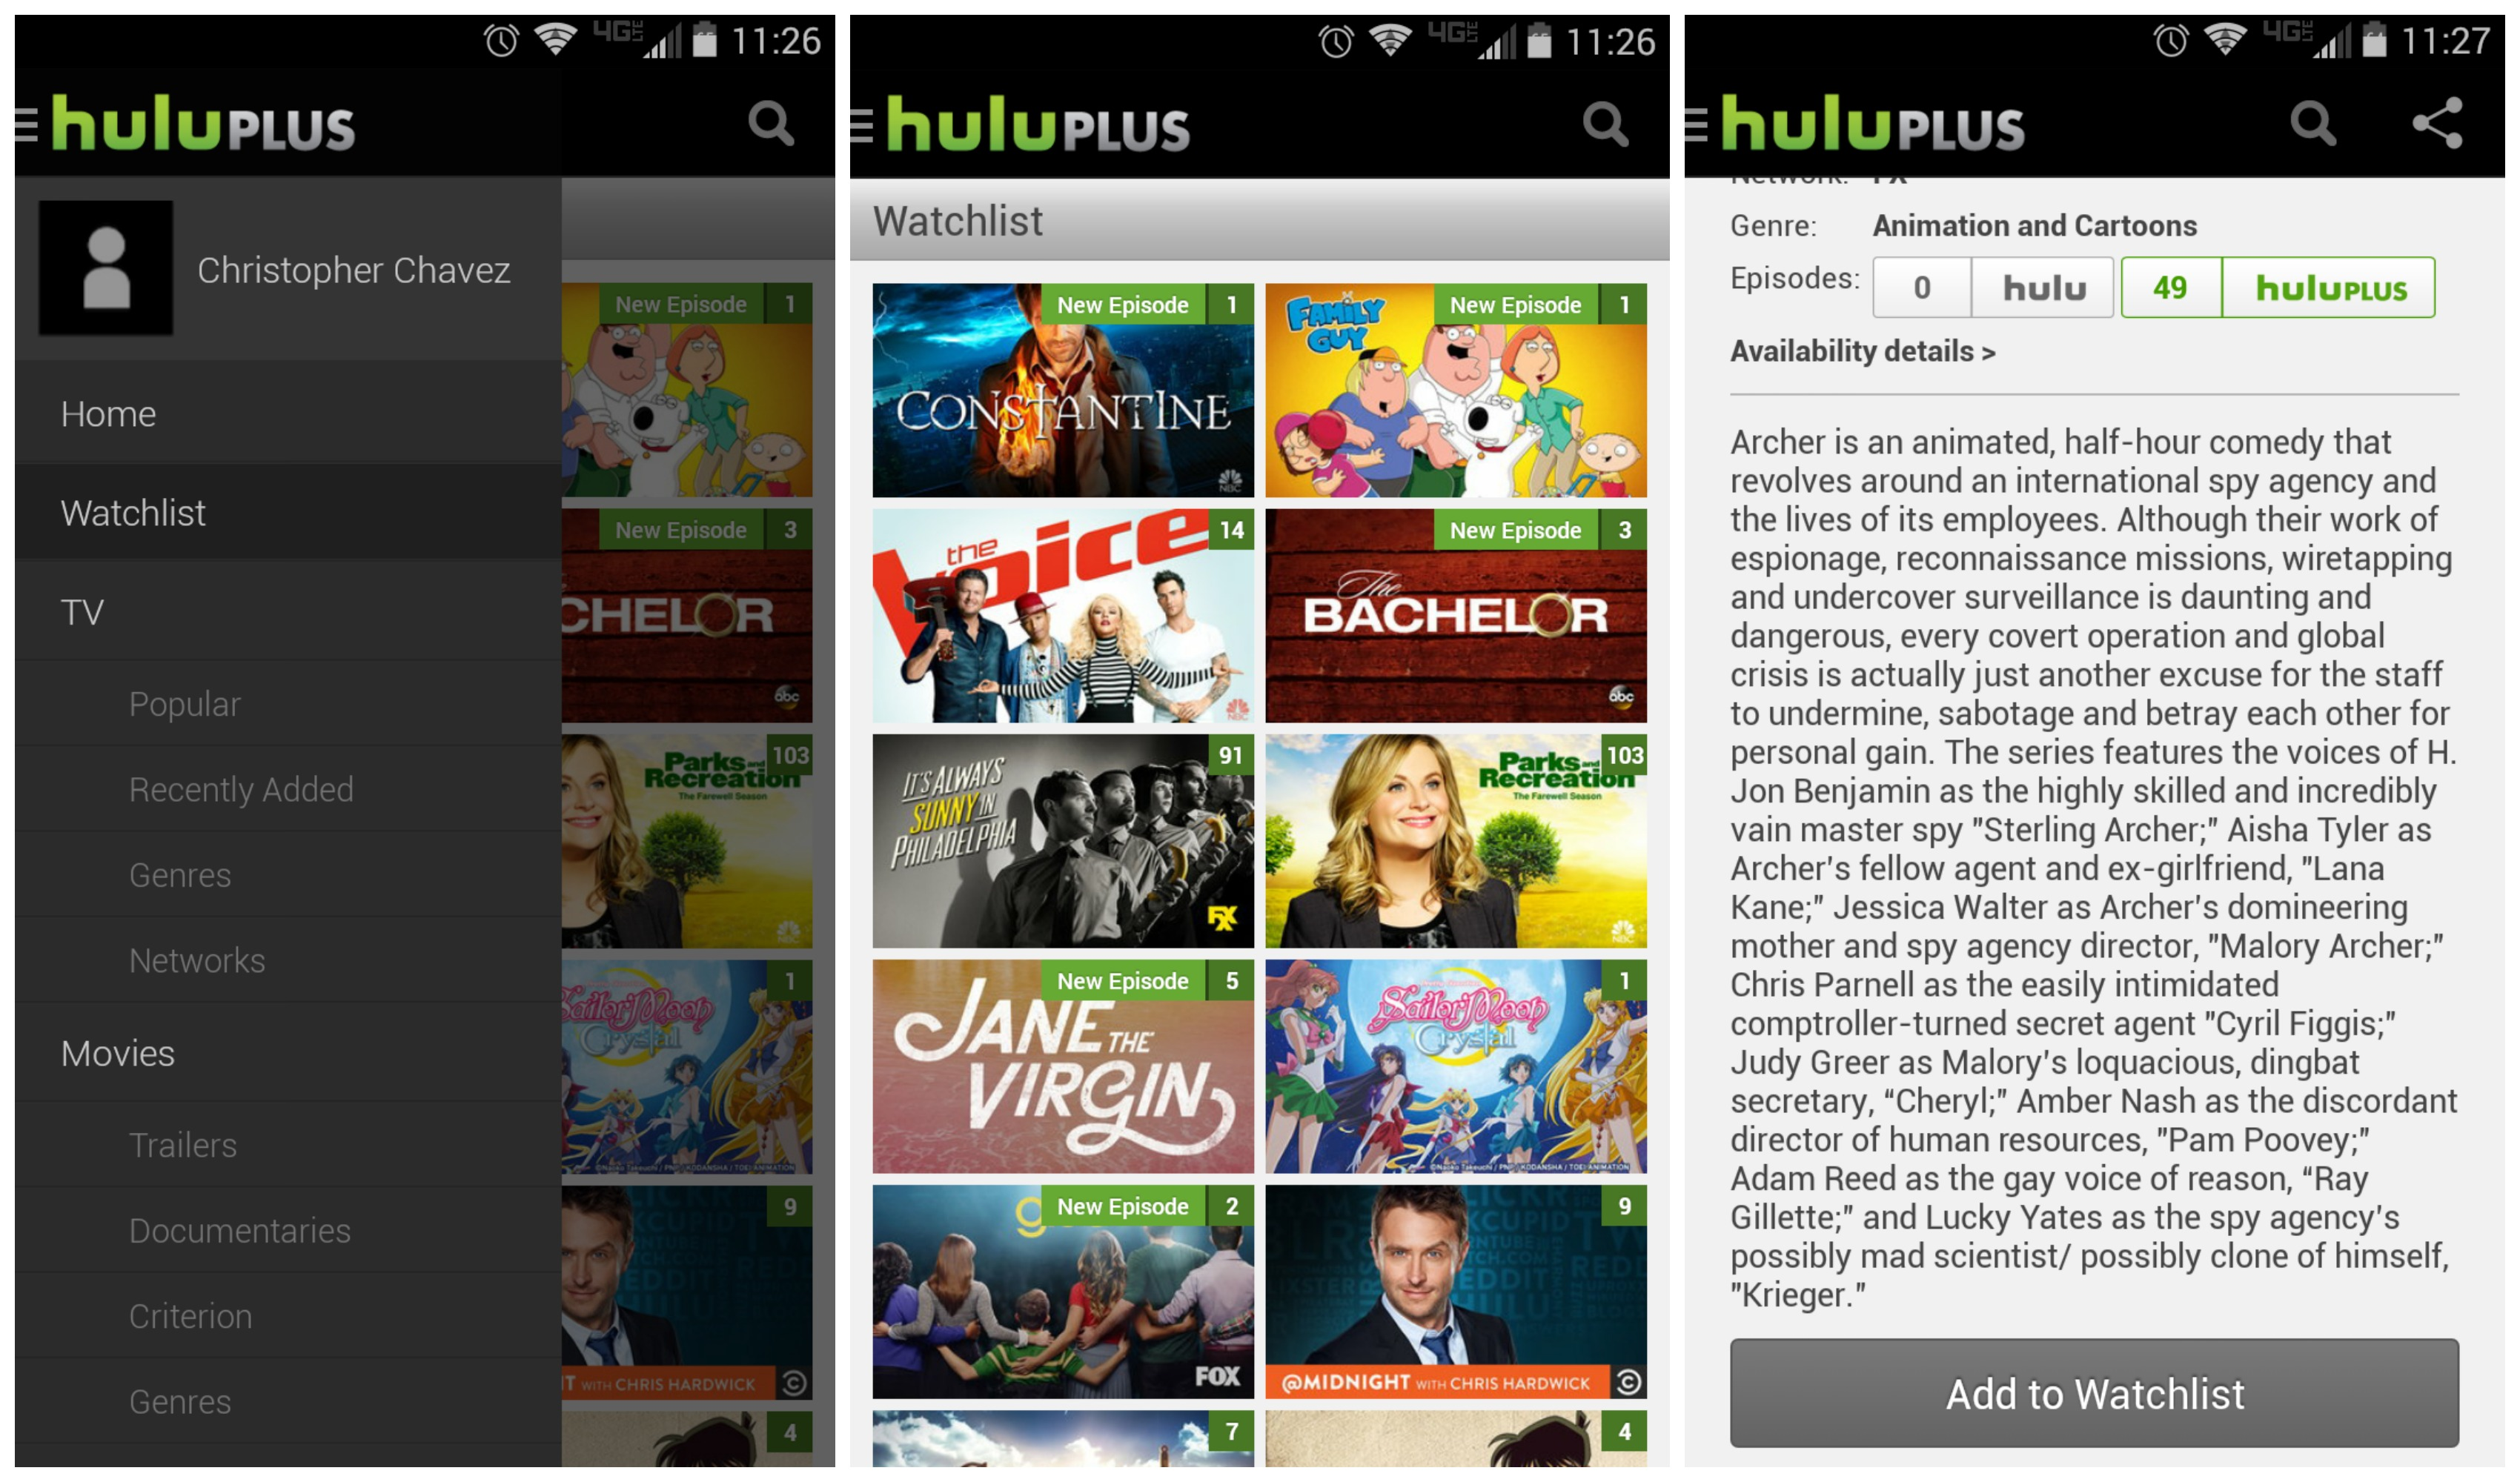 hulu watchlist replaces queue, favorites, & shows you watch